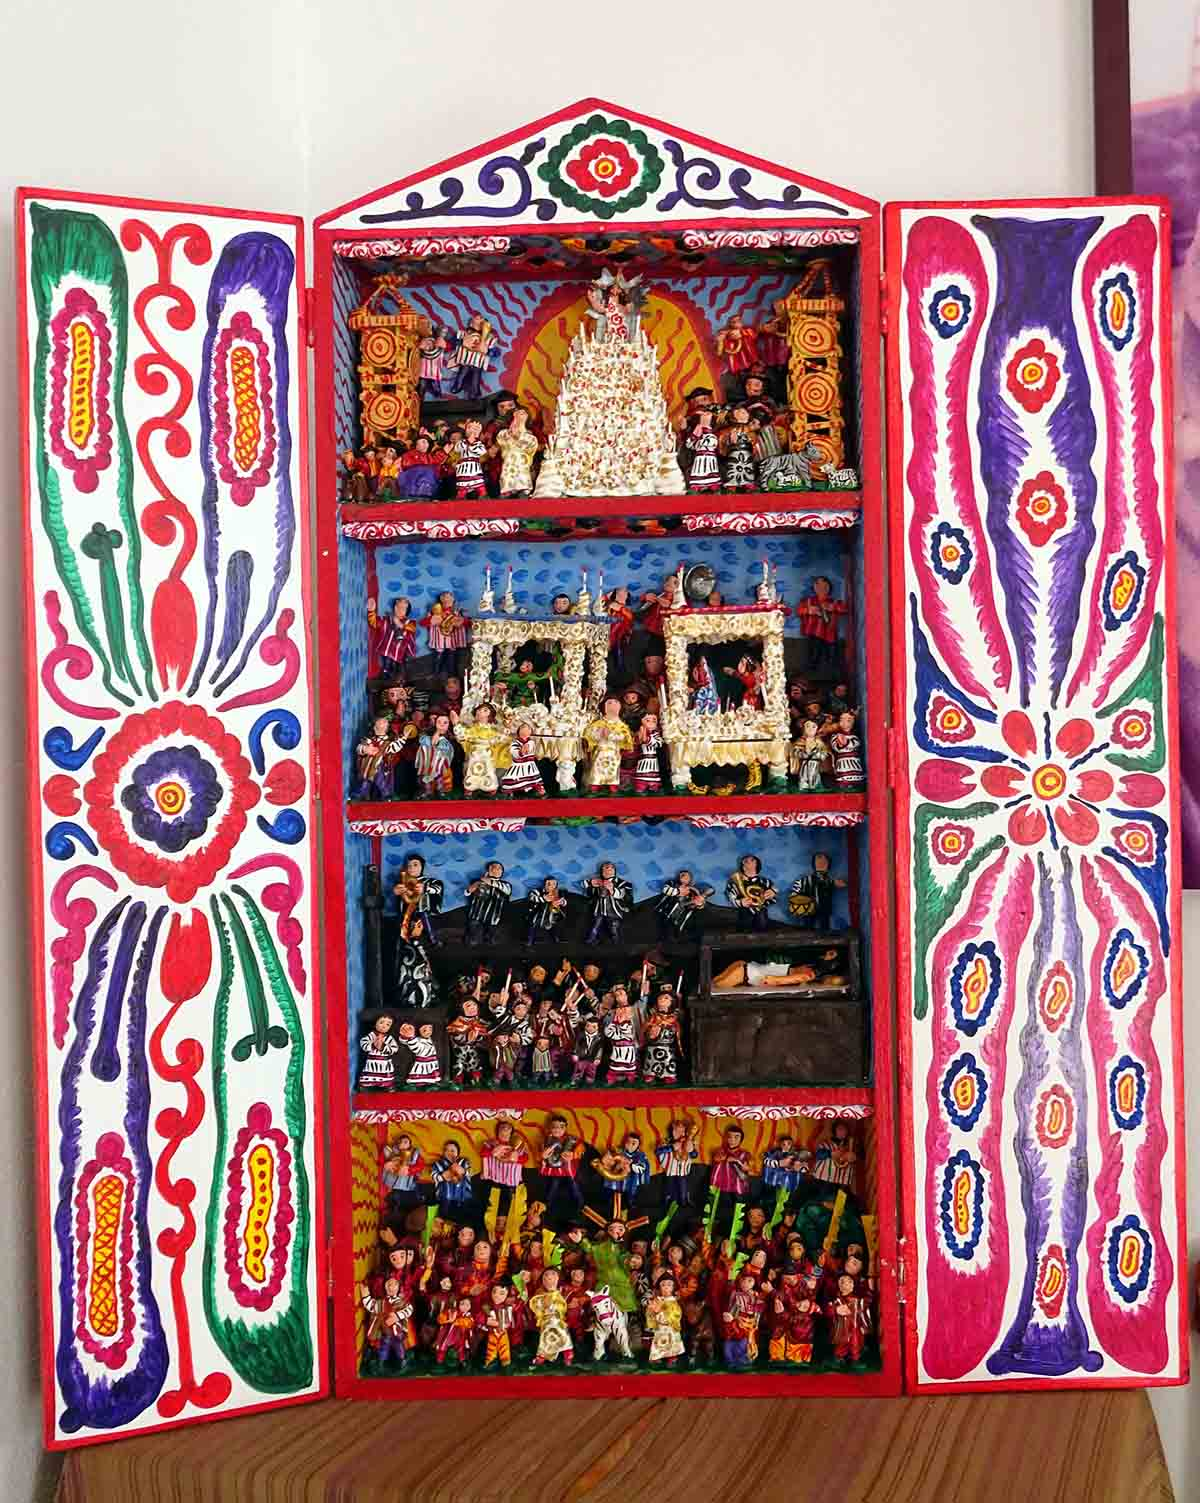 An altar-like retablo with colorful hand-painted designs on the doors and hand-carved figures inside